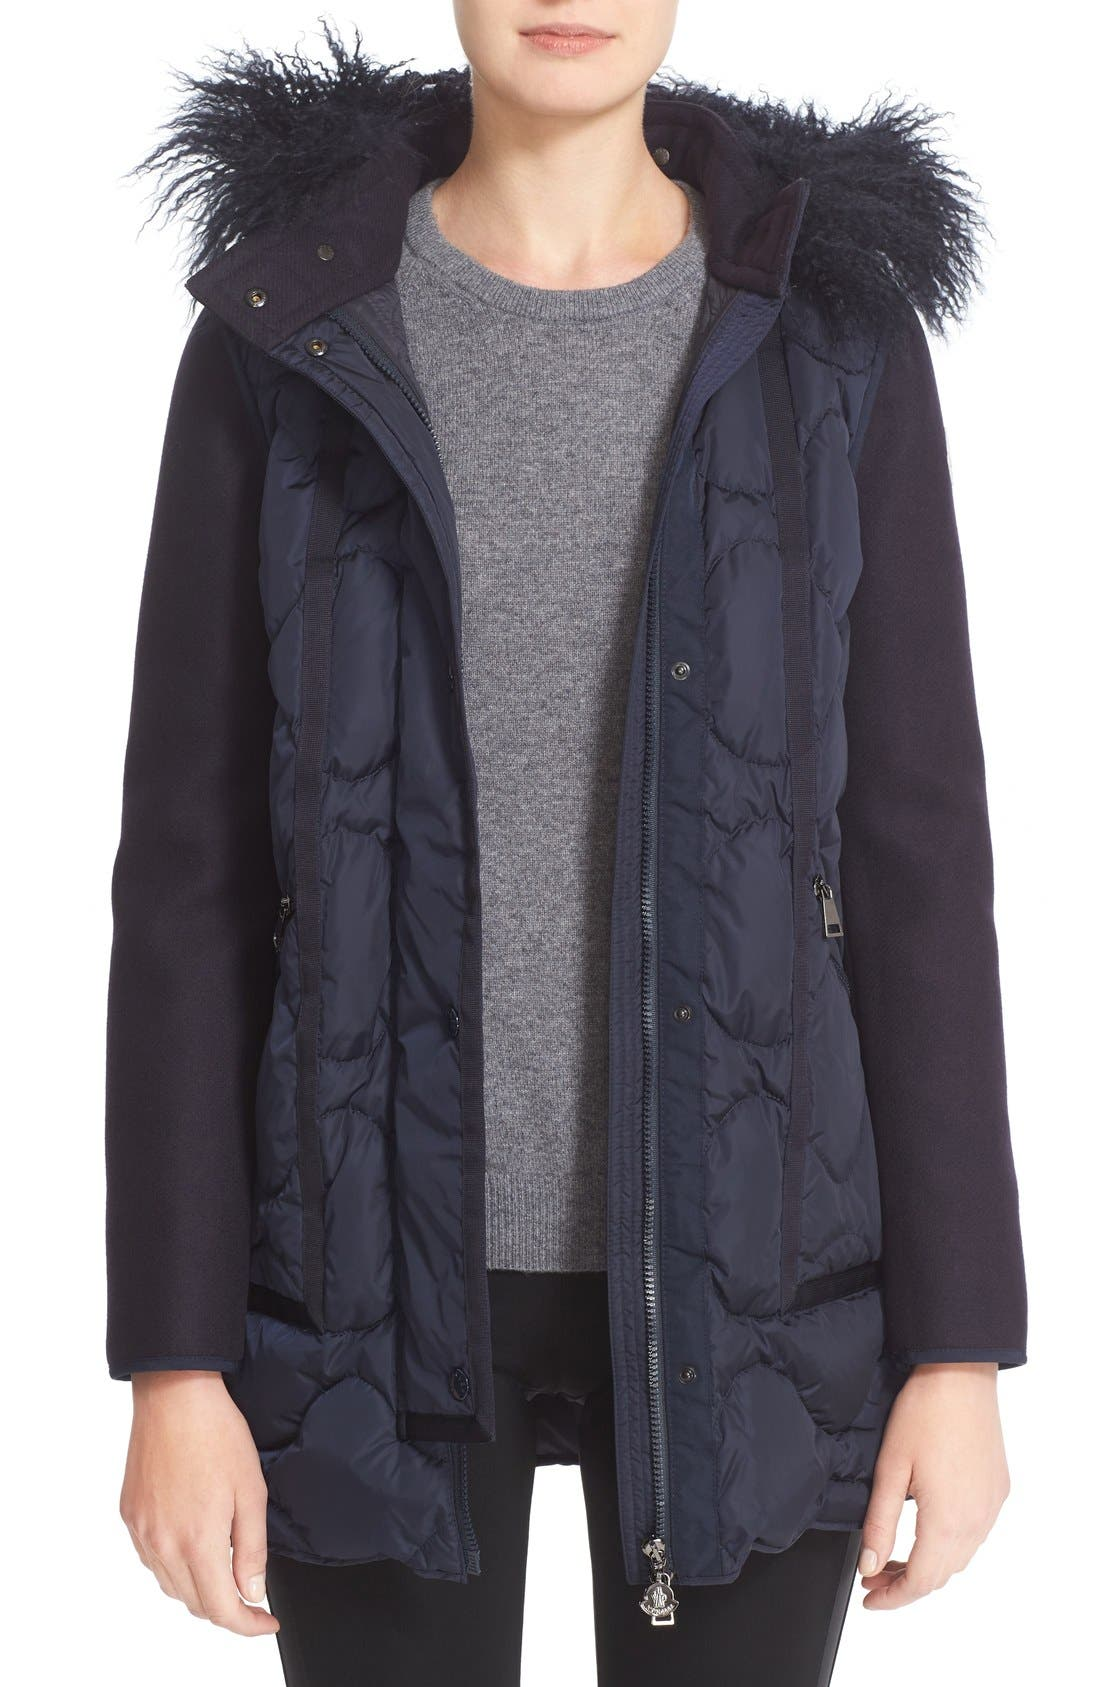 Main Image - Moncler Theodora Water Resistant Hooded Jacket with Genuine Mongolian Fur Trim